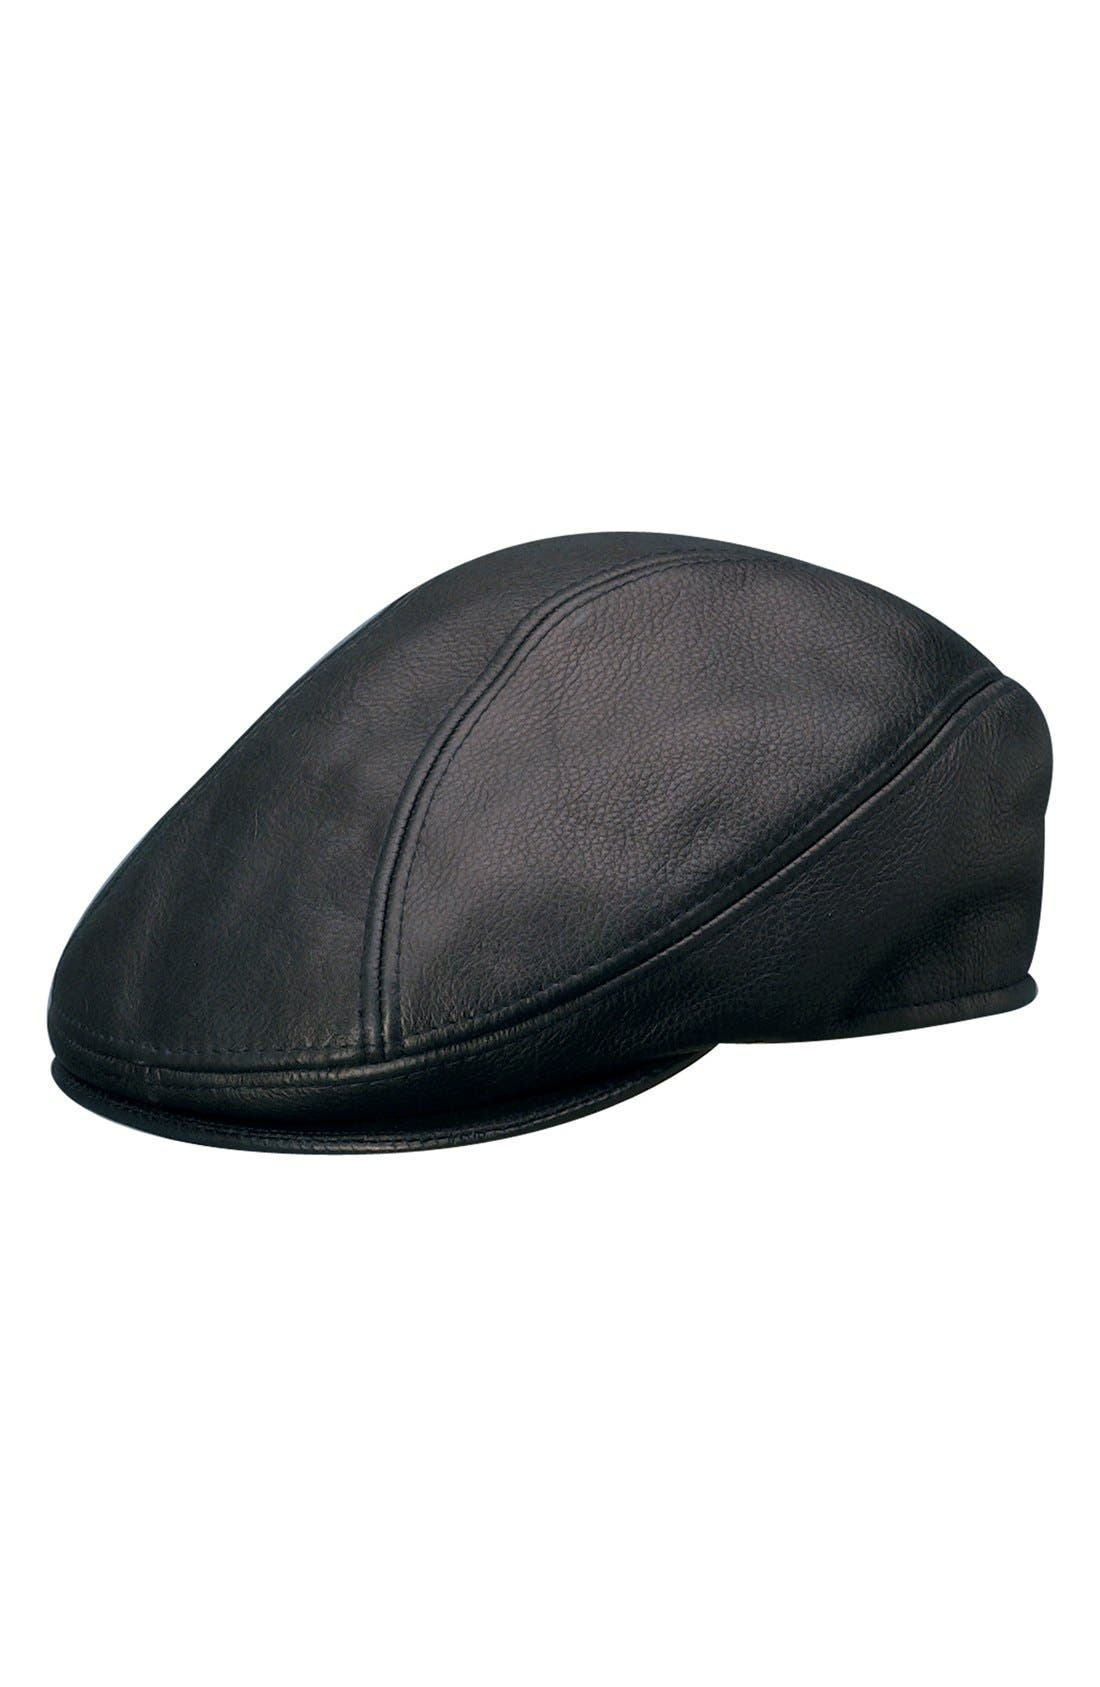 Main Image - Stetson Leather Driving Cap